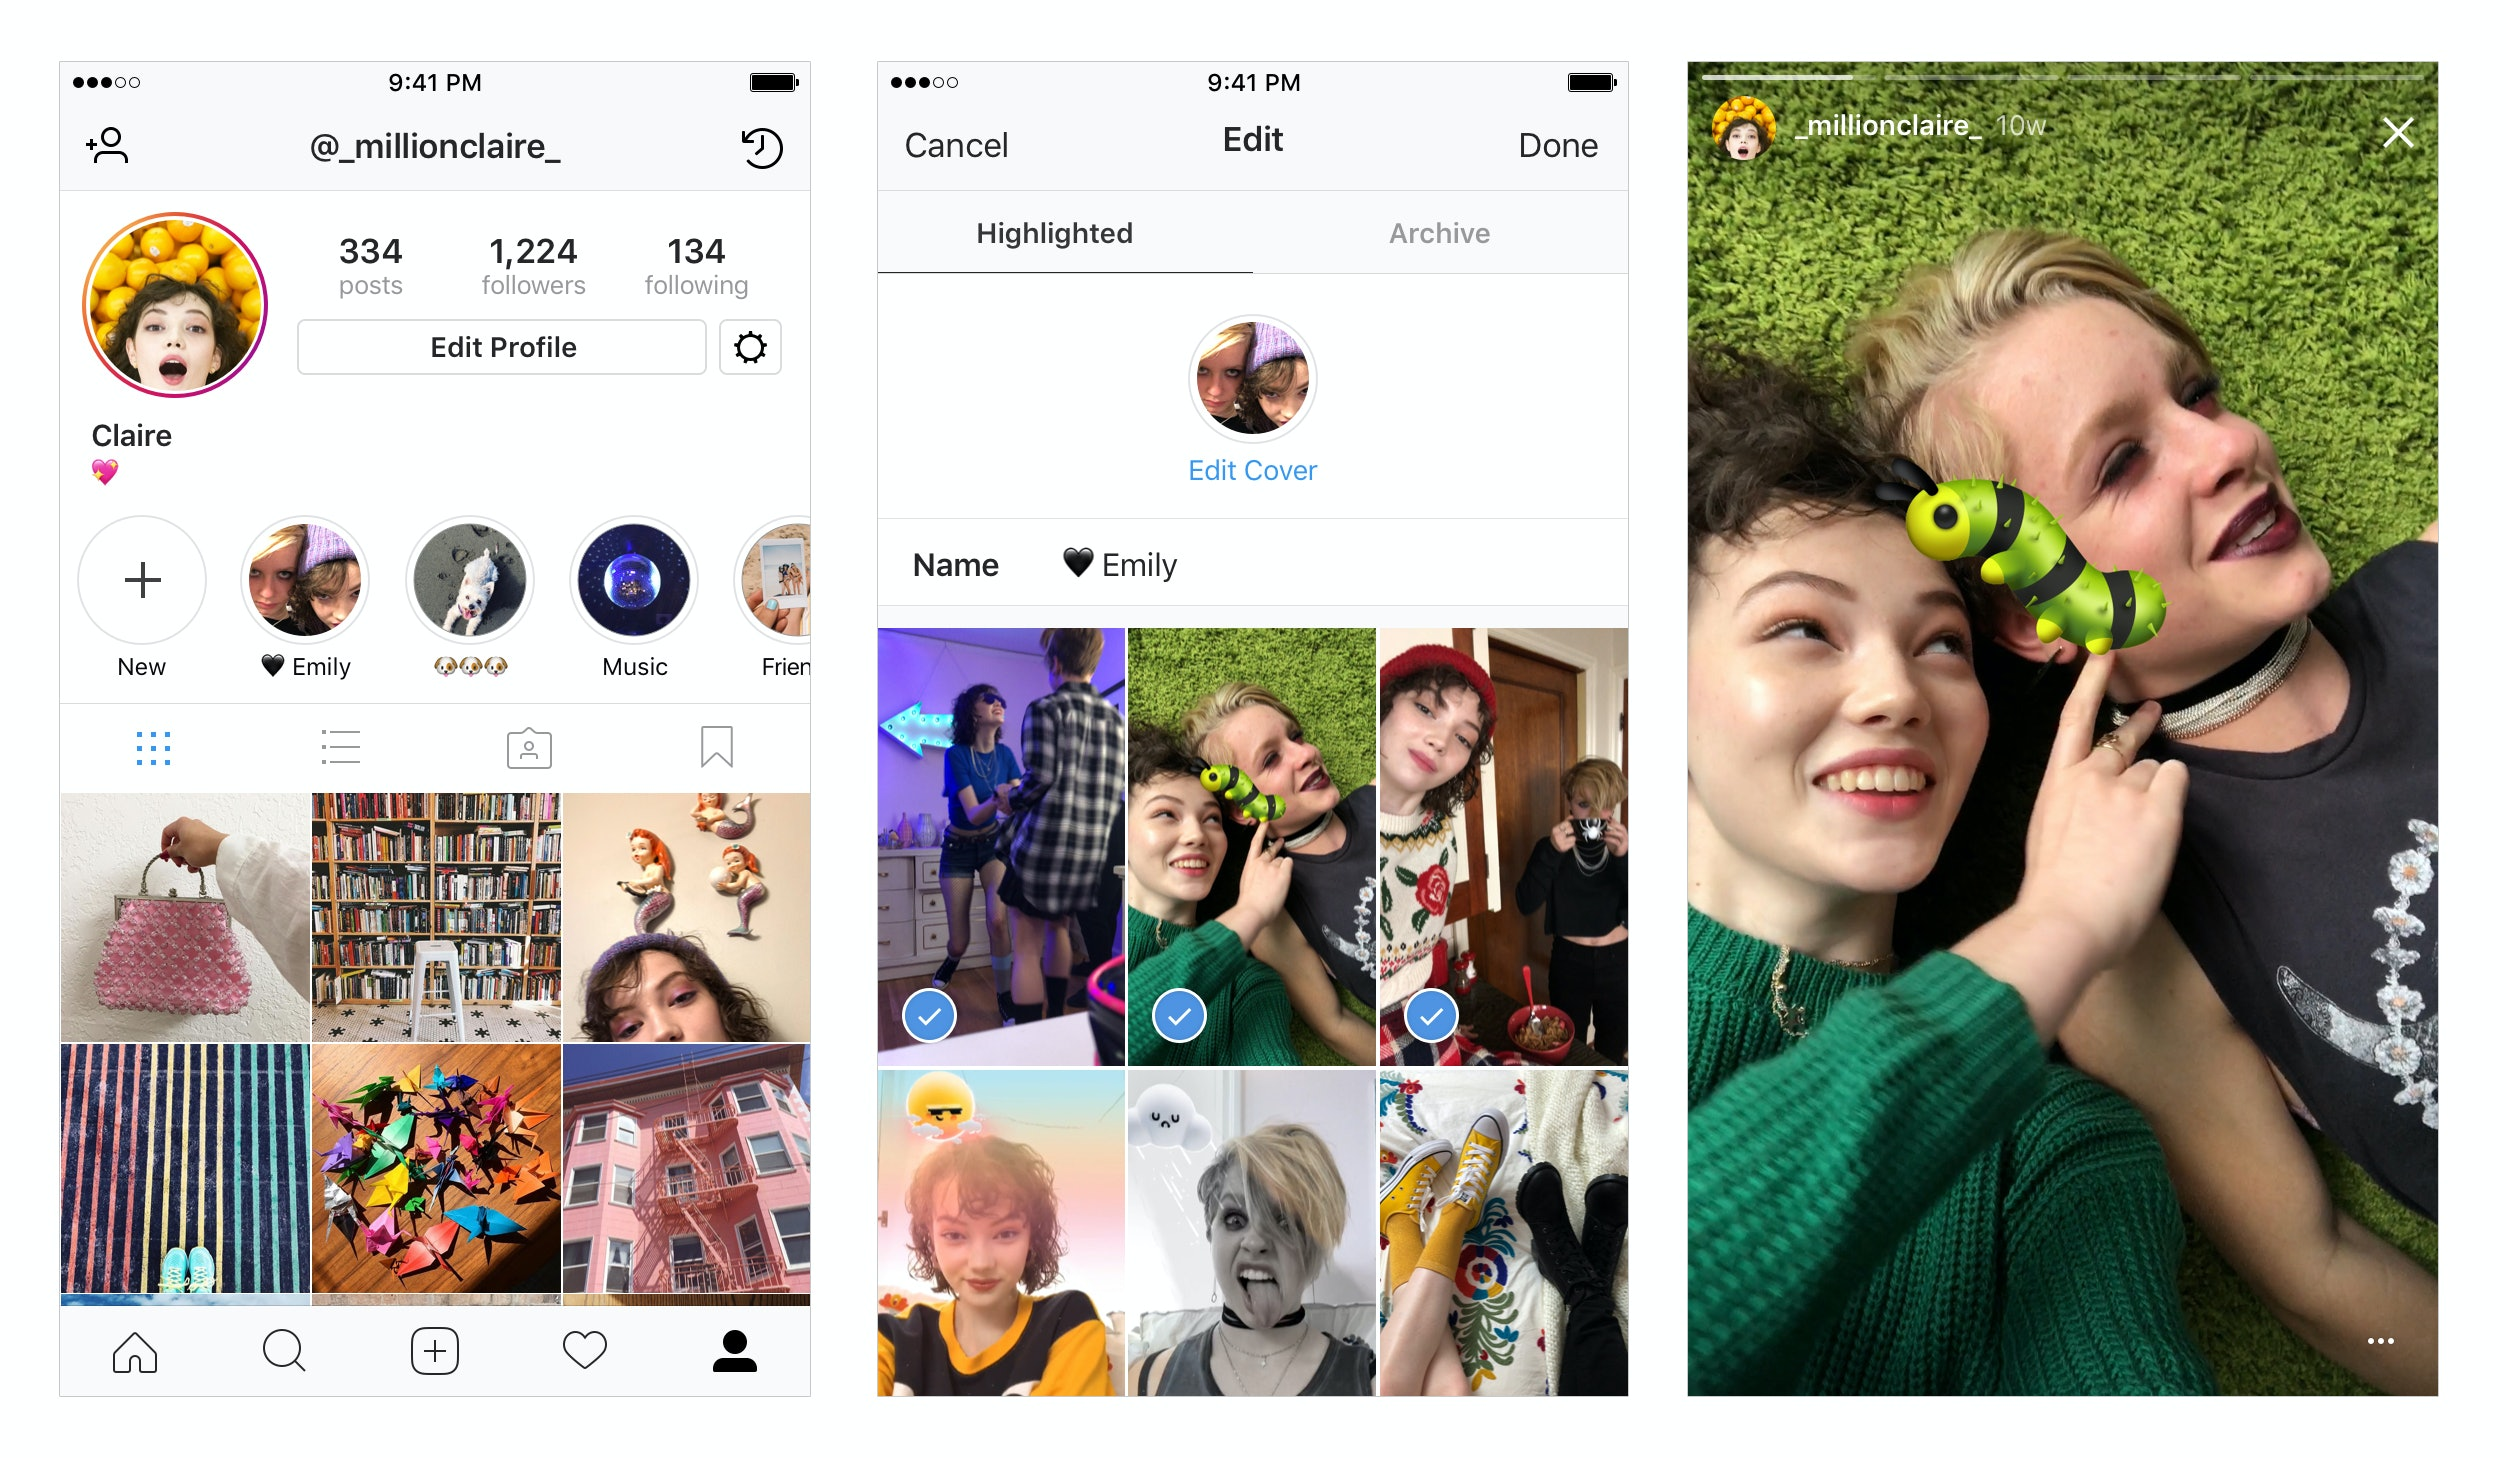 Instagram adds Stories Highlights and Archive